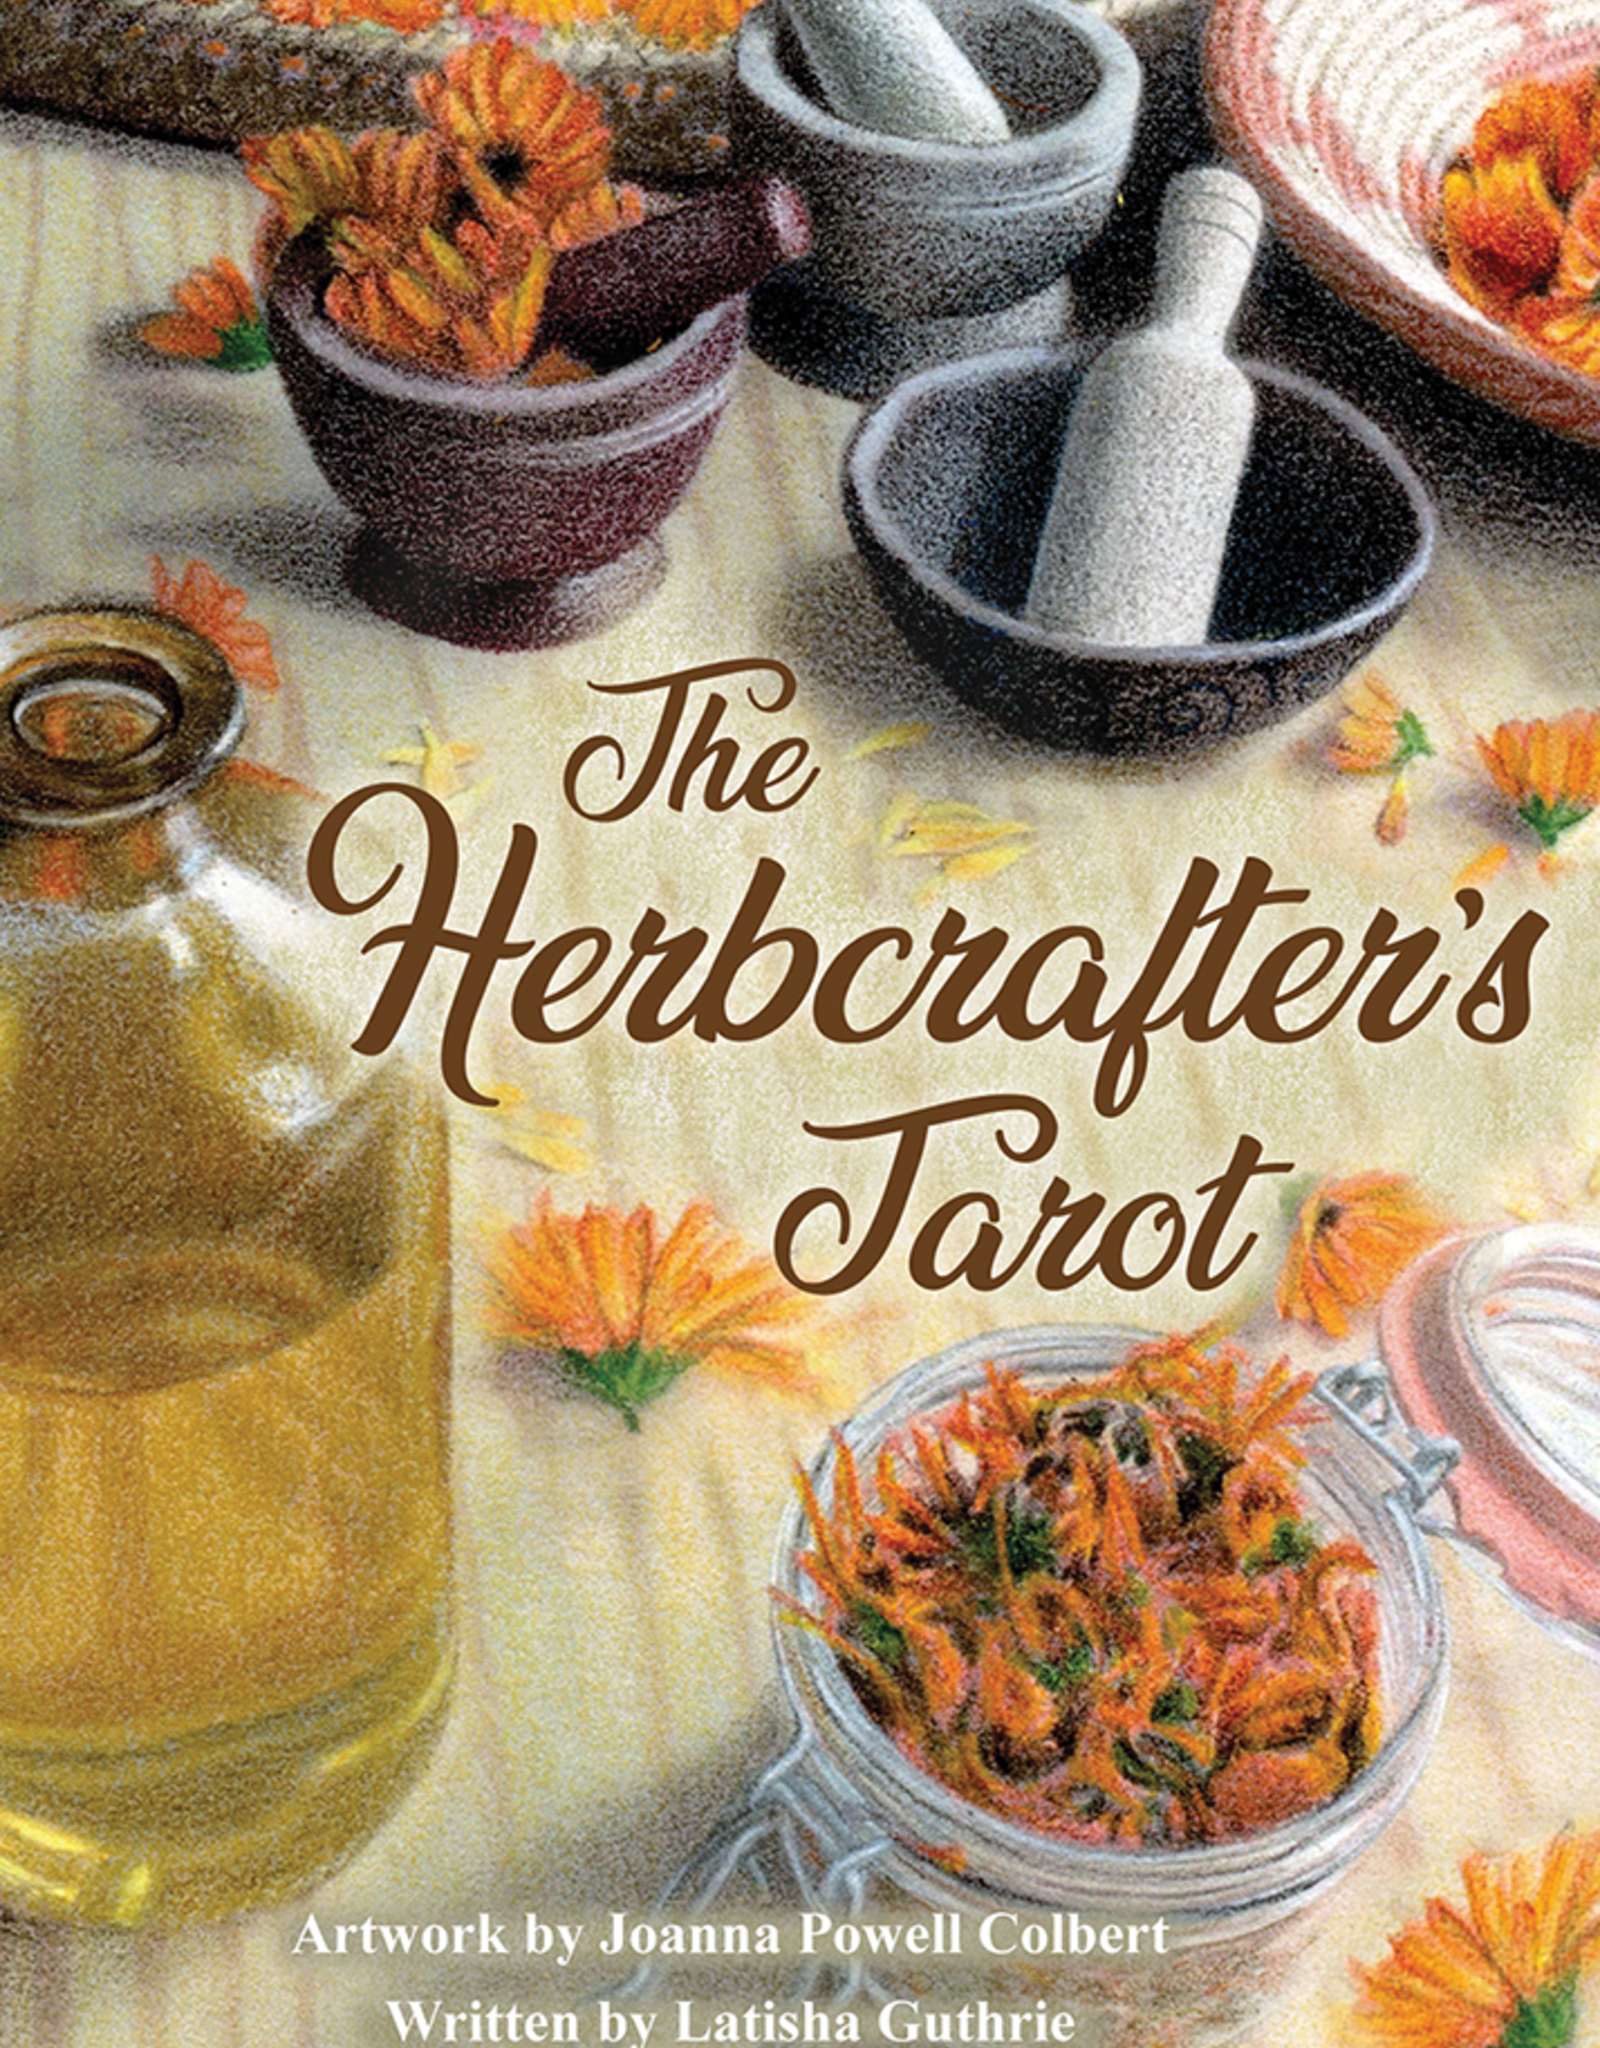 U.S. Games Systems, Inc. The Herbcrafter's Tarot